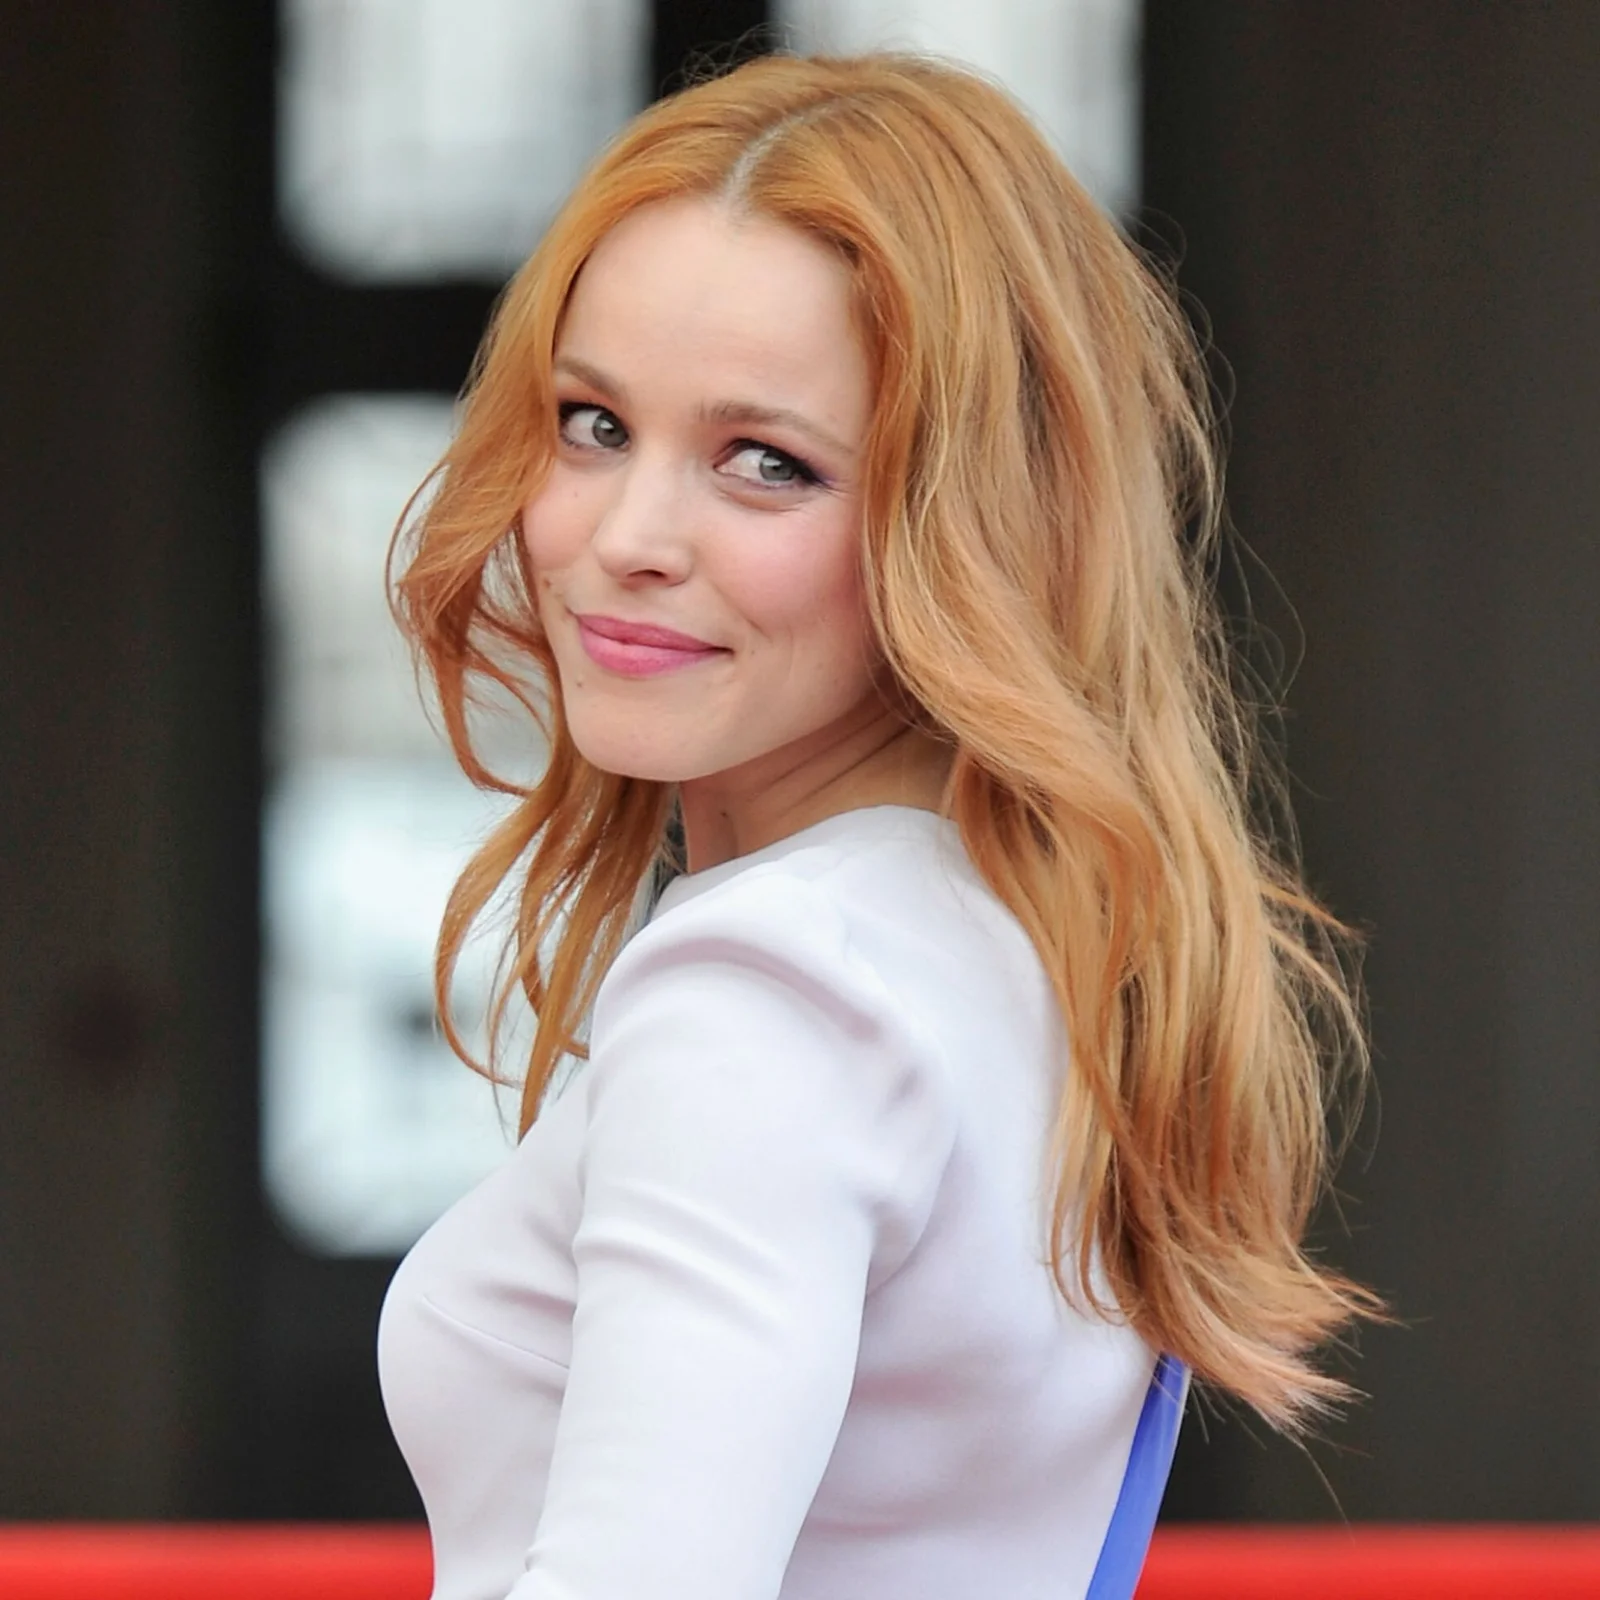 Strawberry Blonde spring hair colour trend